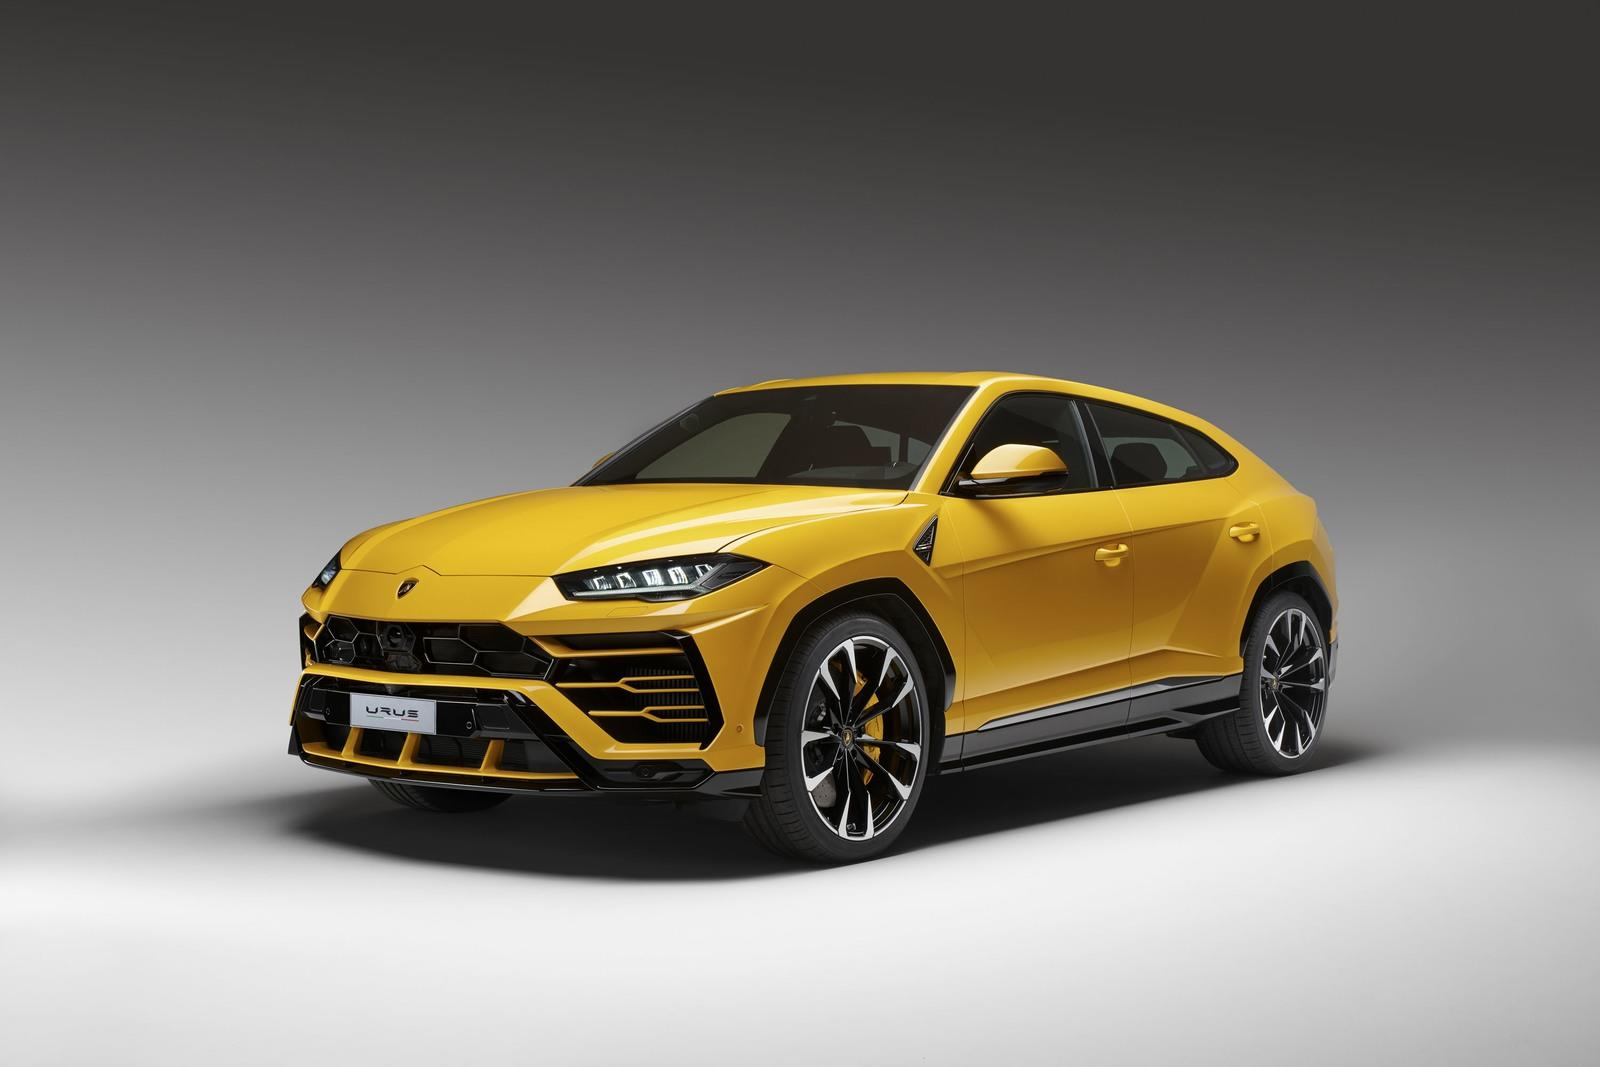 2019 lamborghini urus price * specs * interior * engine * design